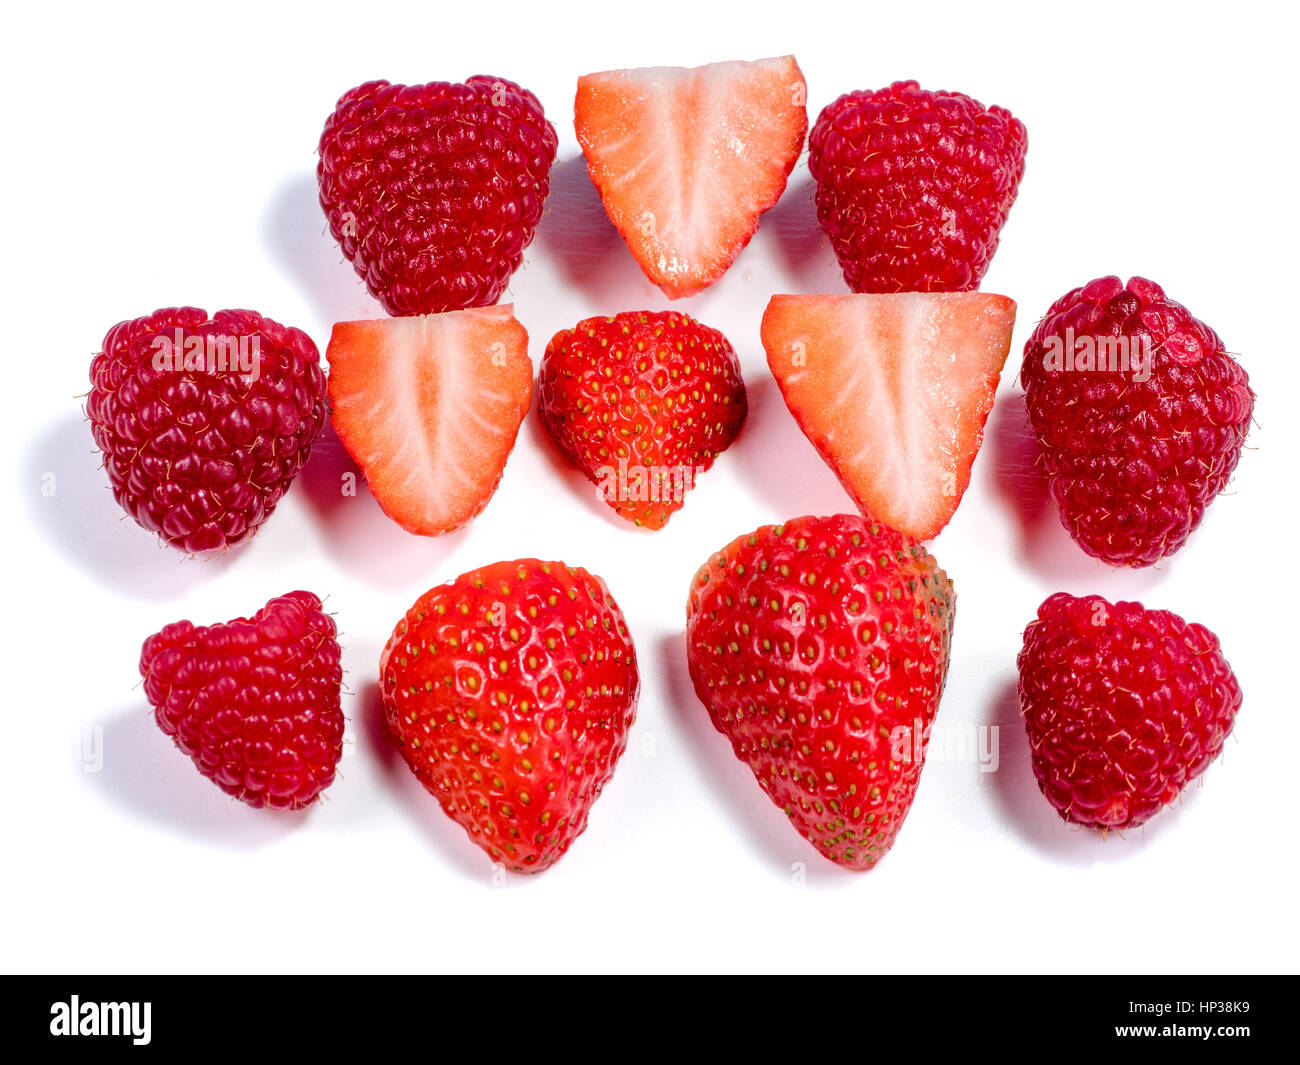 Chopped starwberries and raspberries making a pattern on a white background - Stock Image